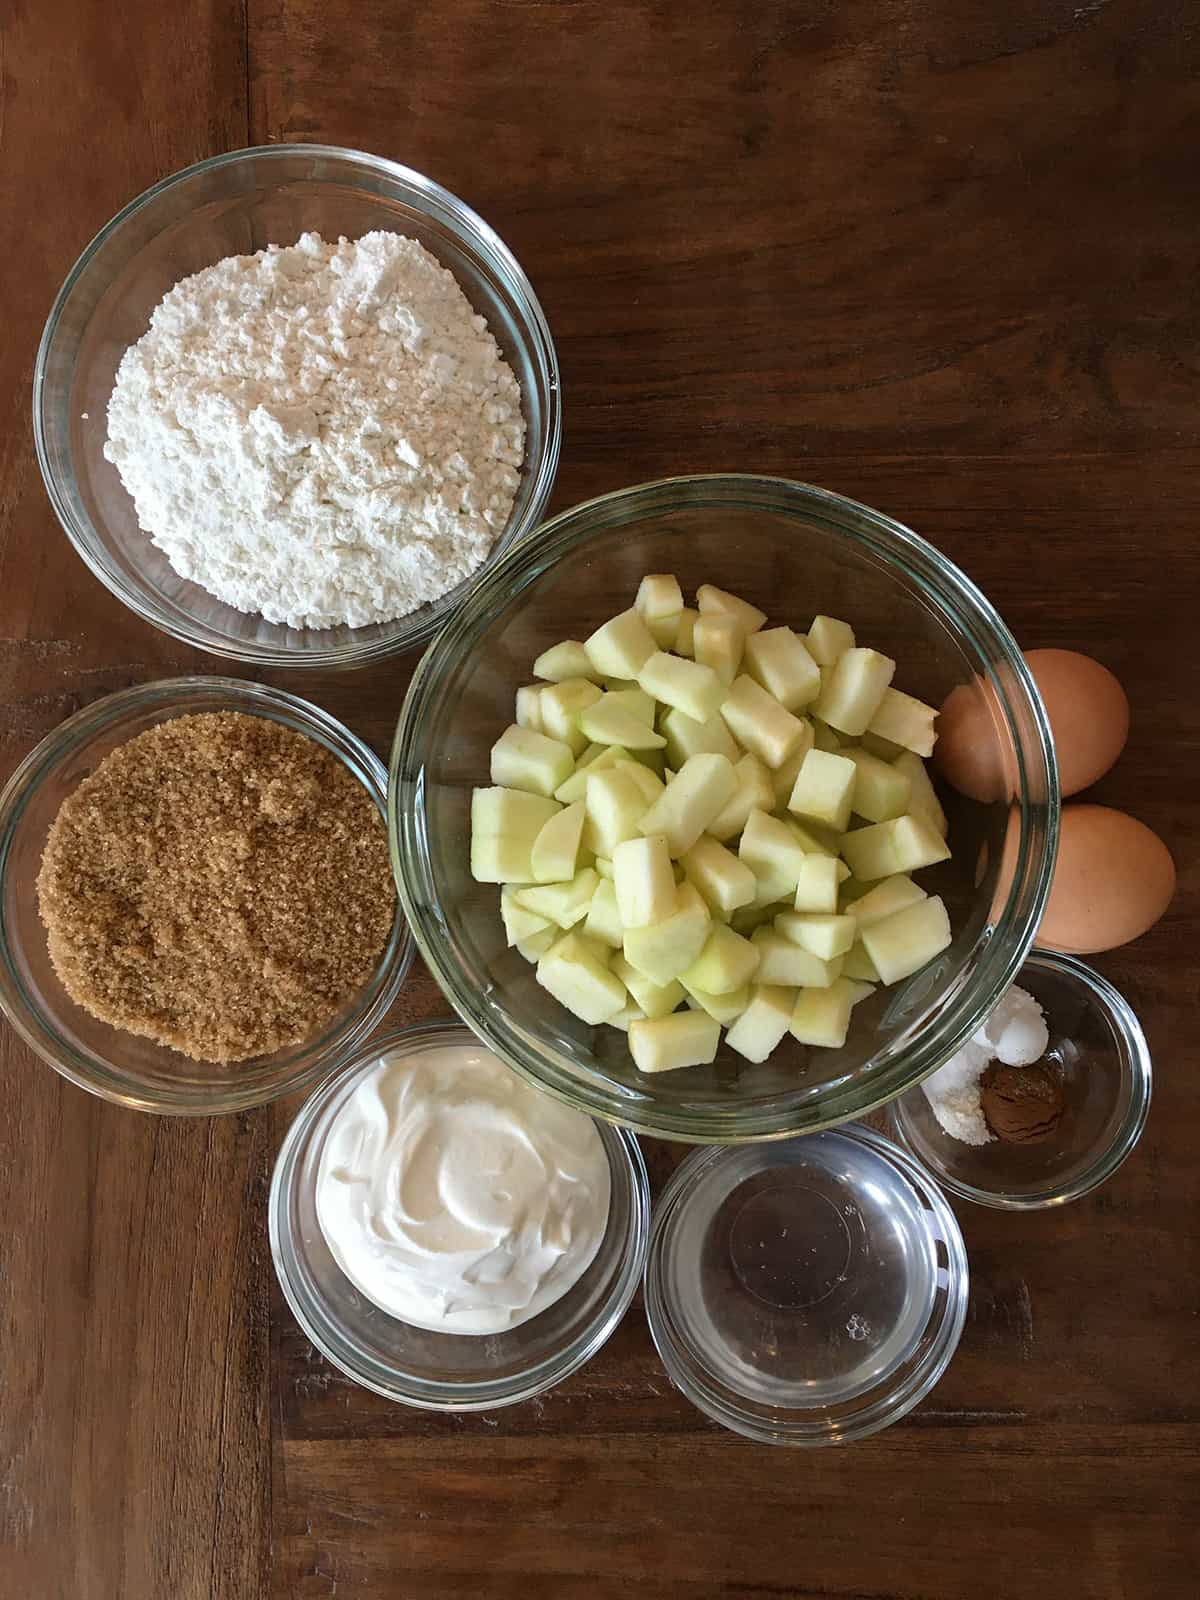 Flour, brown sugar, sour cream, coconut oil, spices and chopped apples in glass bowls alongside two brown eggs